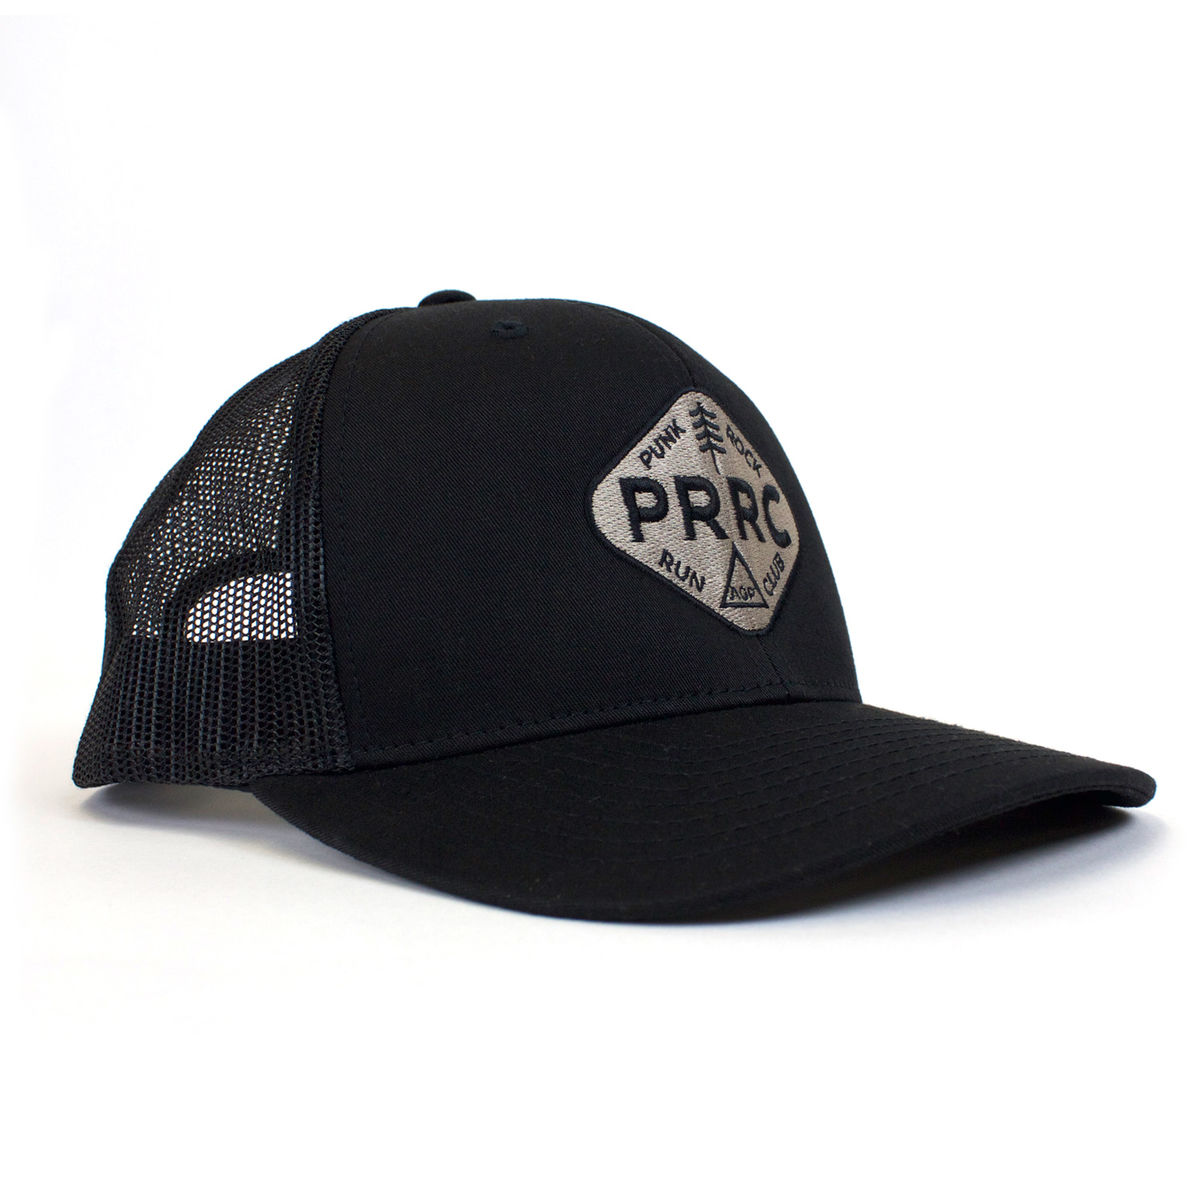 AOP - Punk Rock Run Club - Trucker Cap - product image